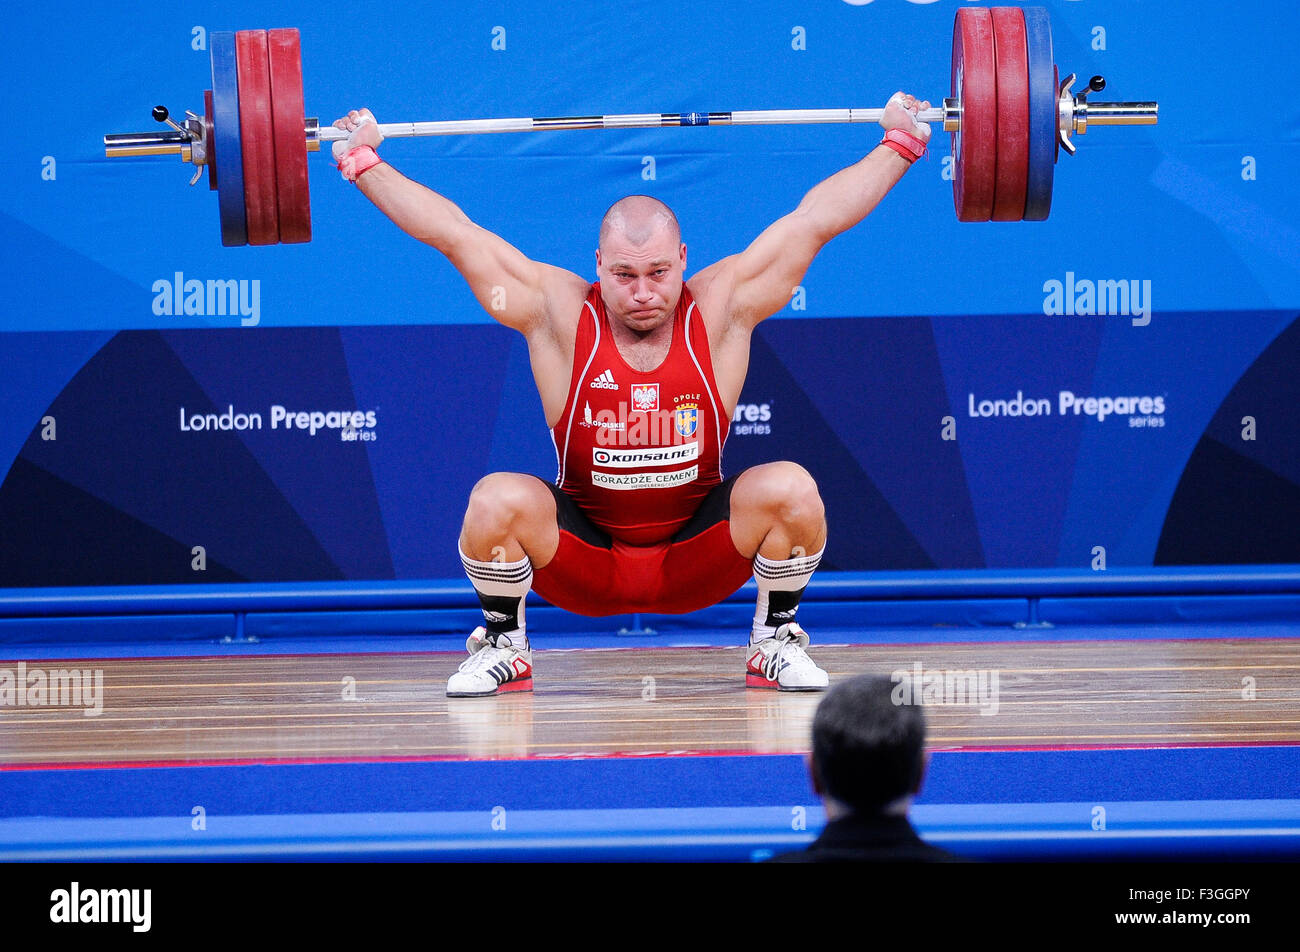 Bartlomiej BONK (POL) in the snatch, The London Prepares Weightlifting Olympic Test Event, ExCel Arena, London, - Stock Image